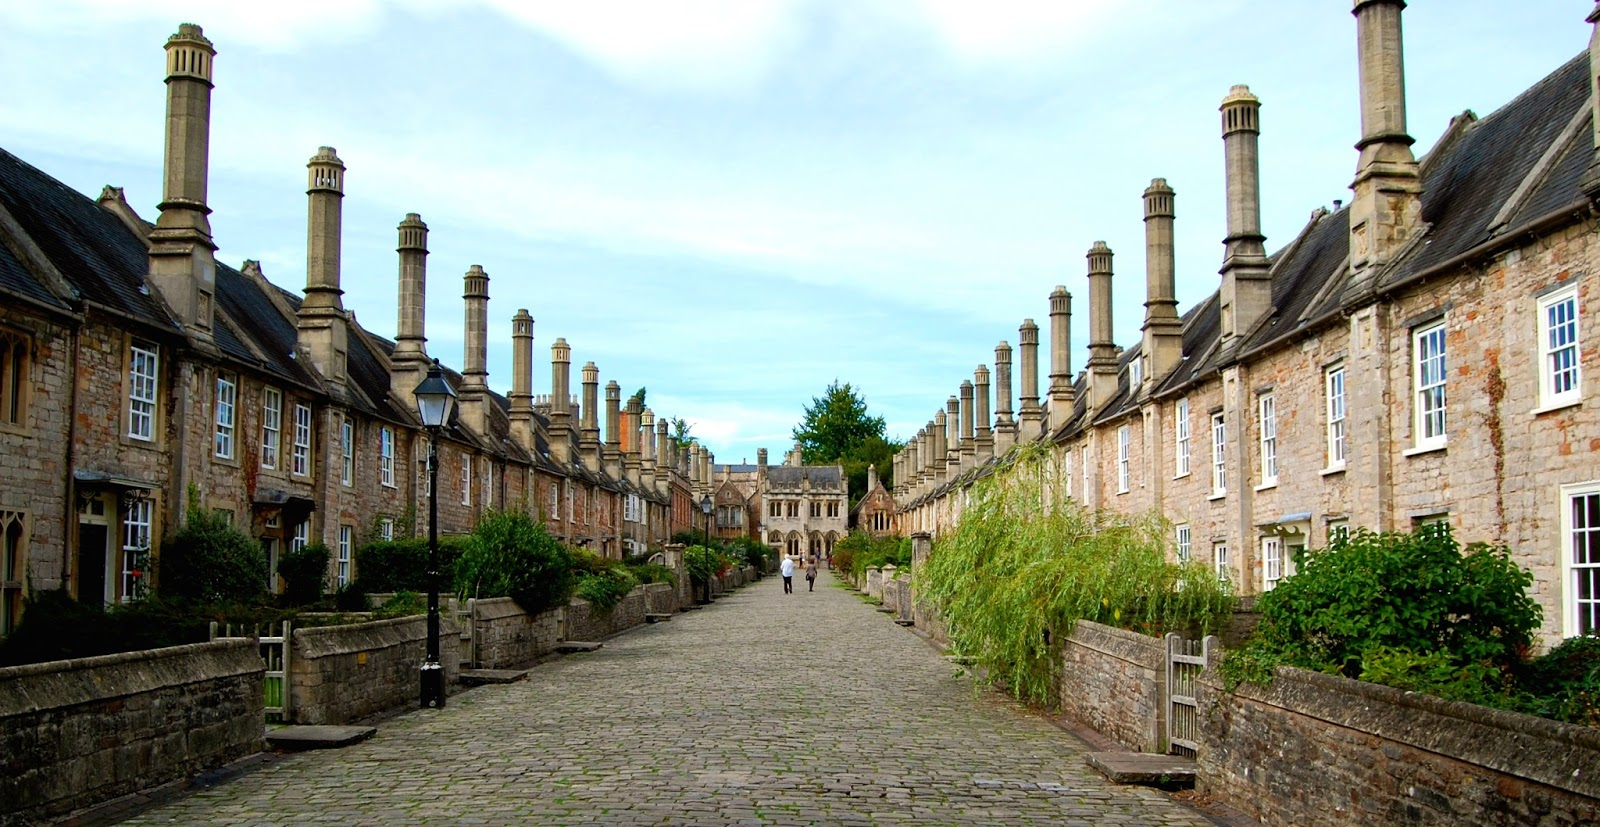 Vicar's Close in Wells, England